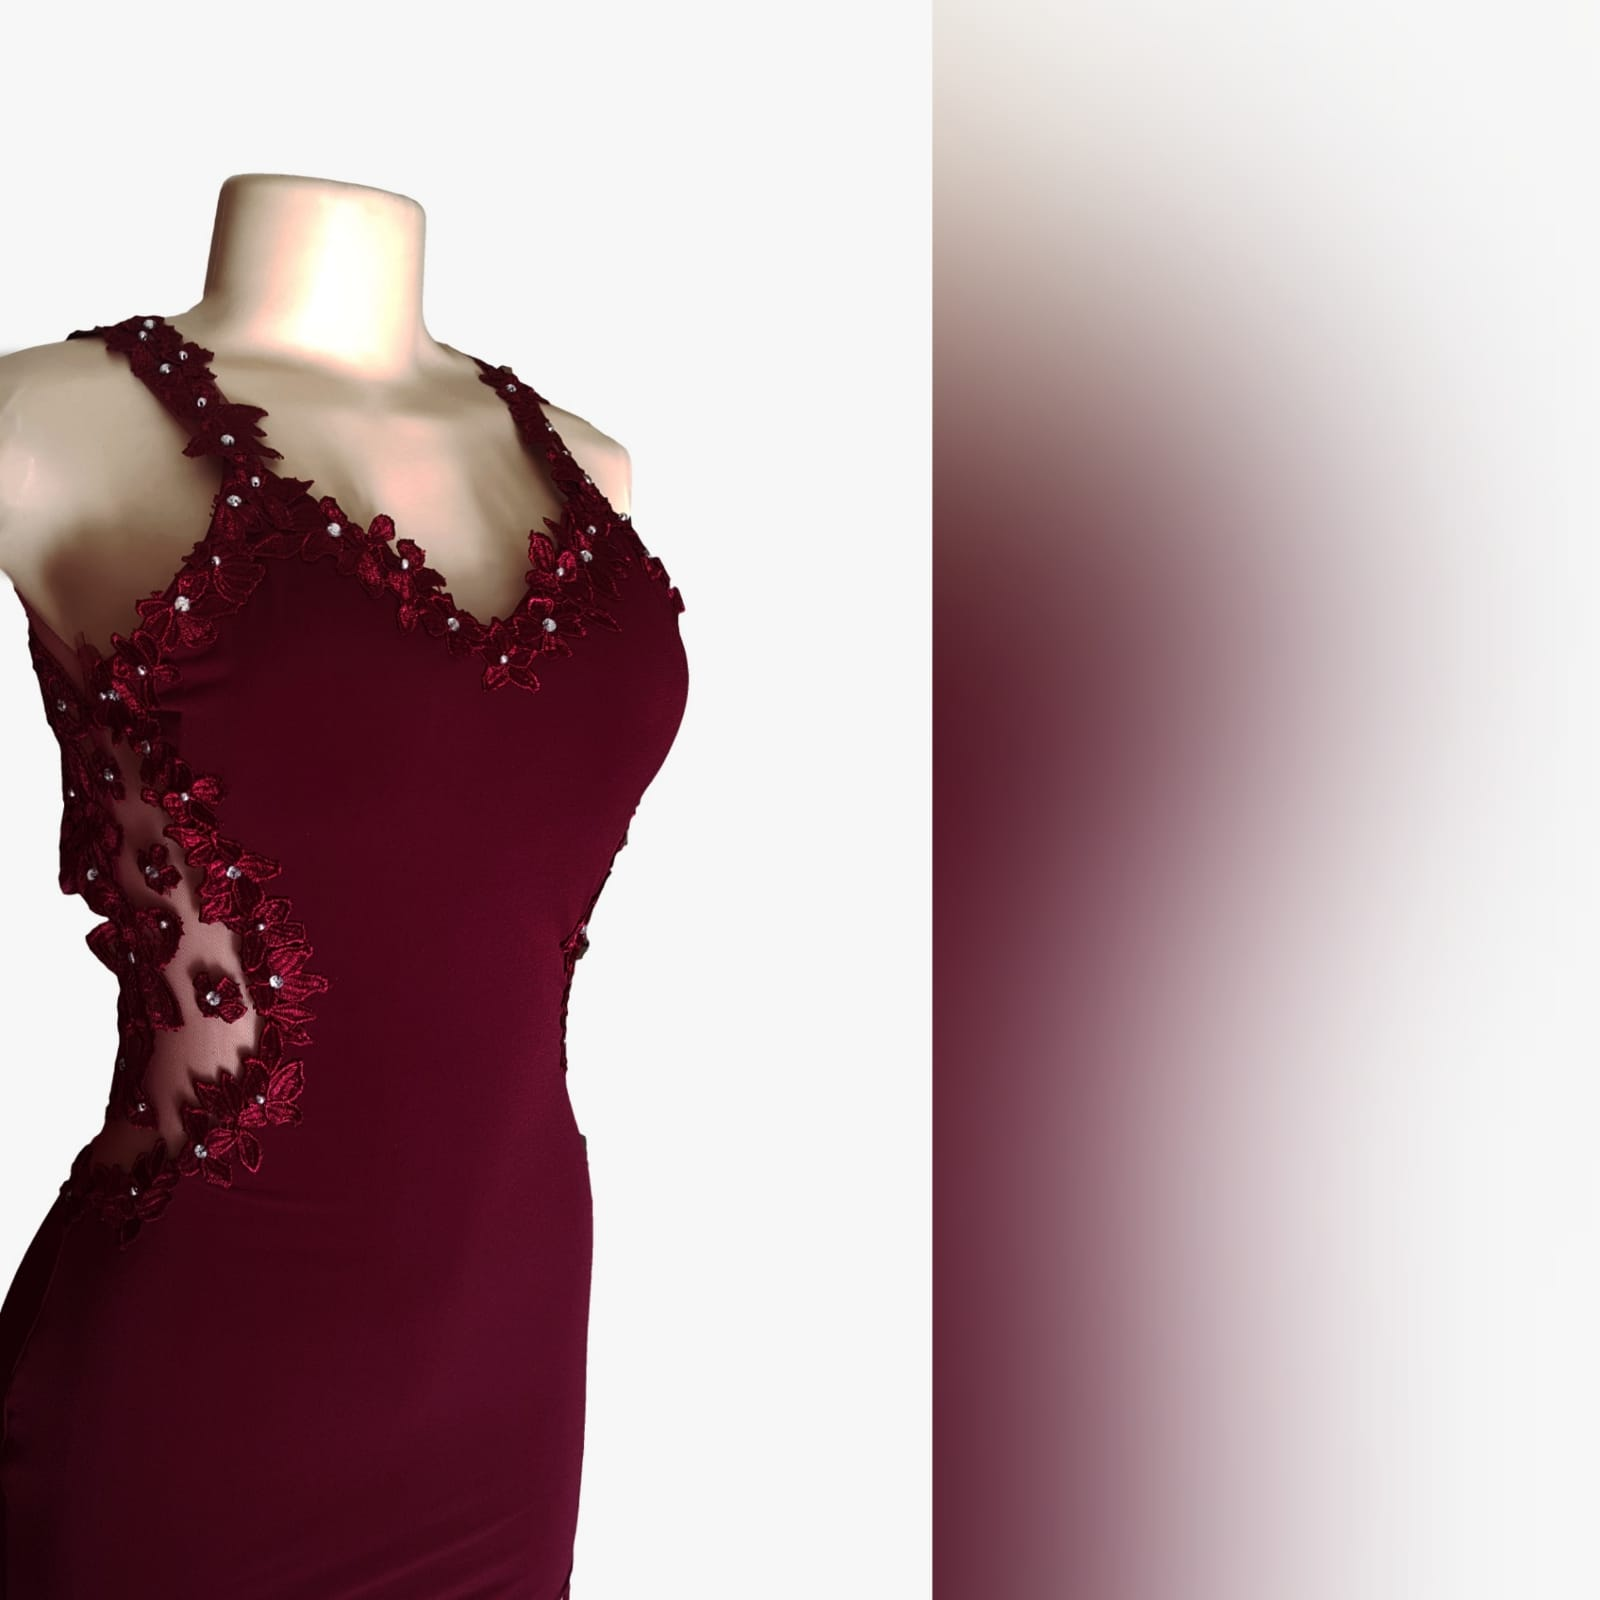 Burgundy long sexy matric farewell dress 7 burgundy long sexy matric farewell dress with an illusion lace low back and side tummy. Sweetheart neckline detailed with lace. With a slit and a train.